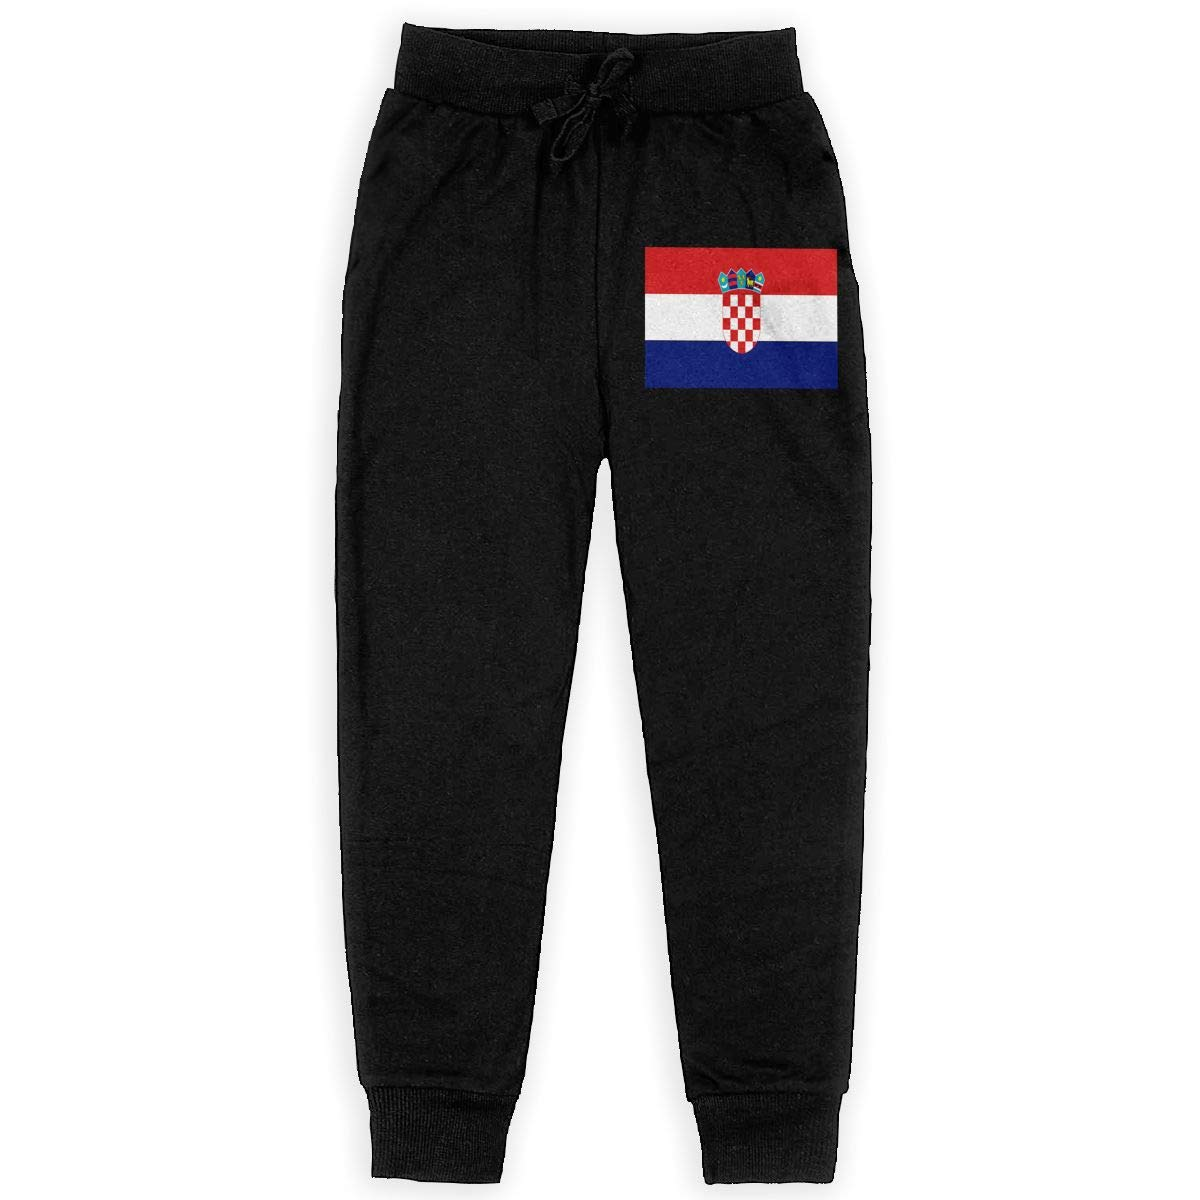 Boys Sweatpants Croatian Rainbow Flag Joggers Sport Training Pants Trousers Cotton Sweatpants for Youth